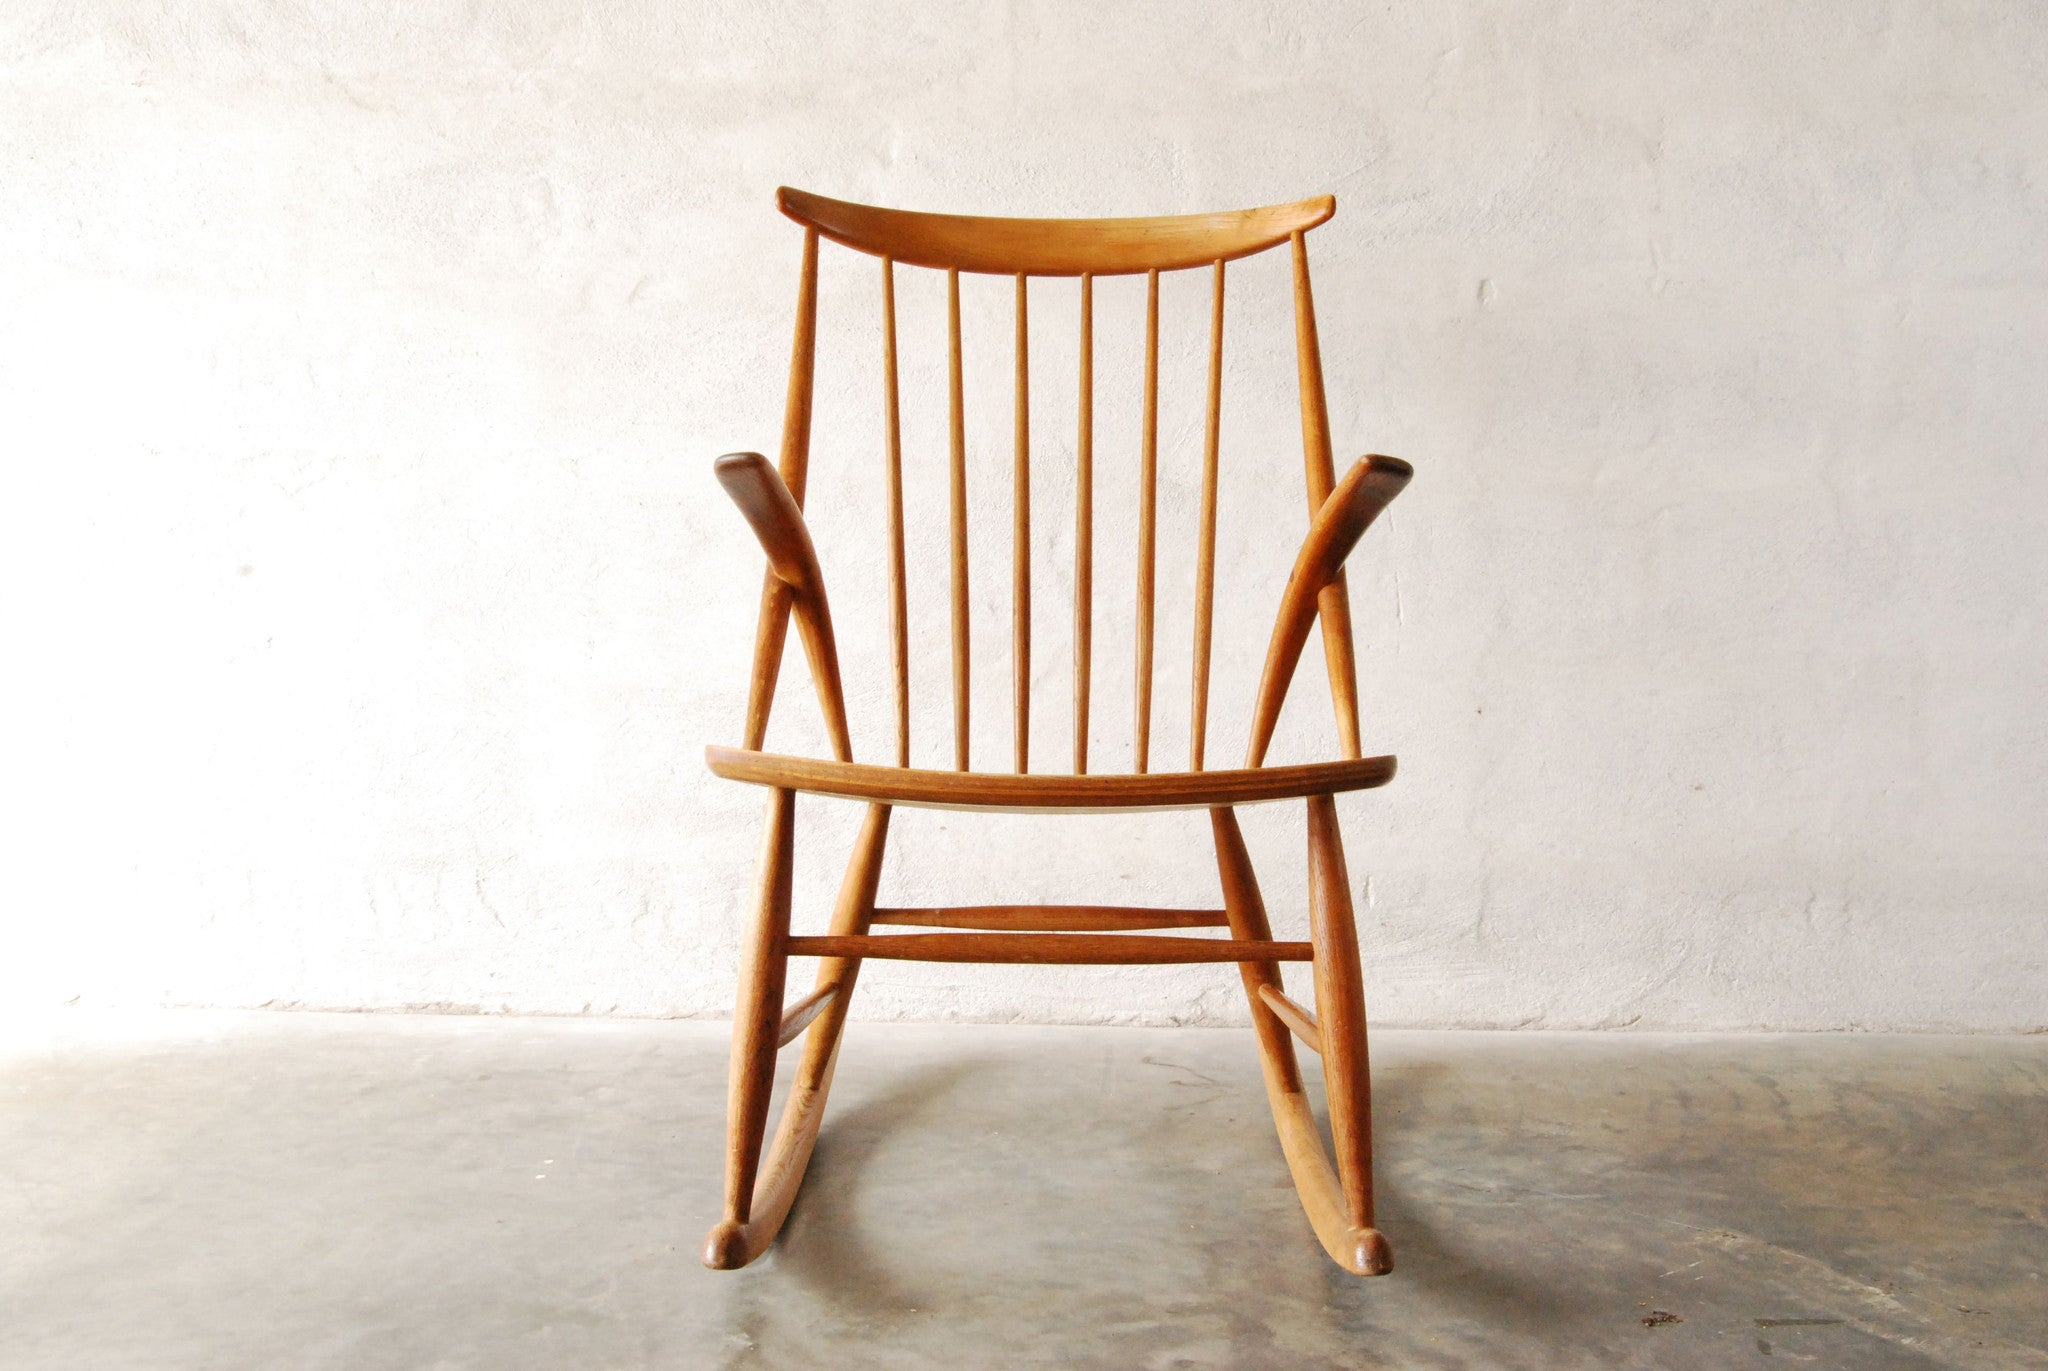 Rocking chair by Illum Wikkelsø